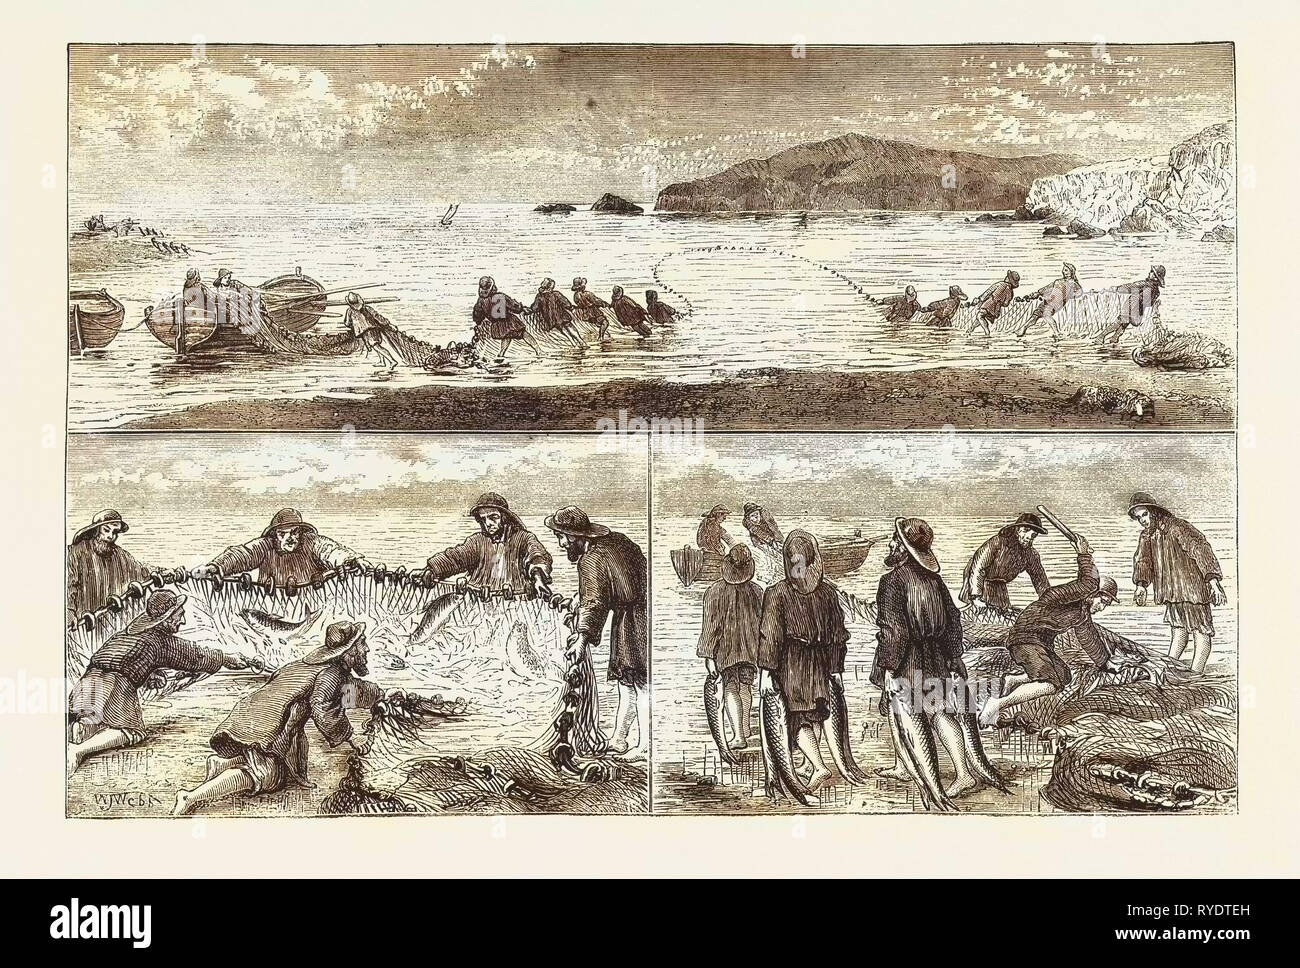 Salmon Fishing: Fishing Salmon, Mouth of the River Tivey, Cardiganshire, Hailing in the Seine Net, Clubbing the Fish, Carrying the Fish to the Boat, Engraving 1876, UK - Stock Image